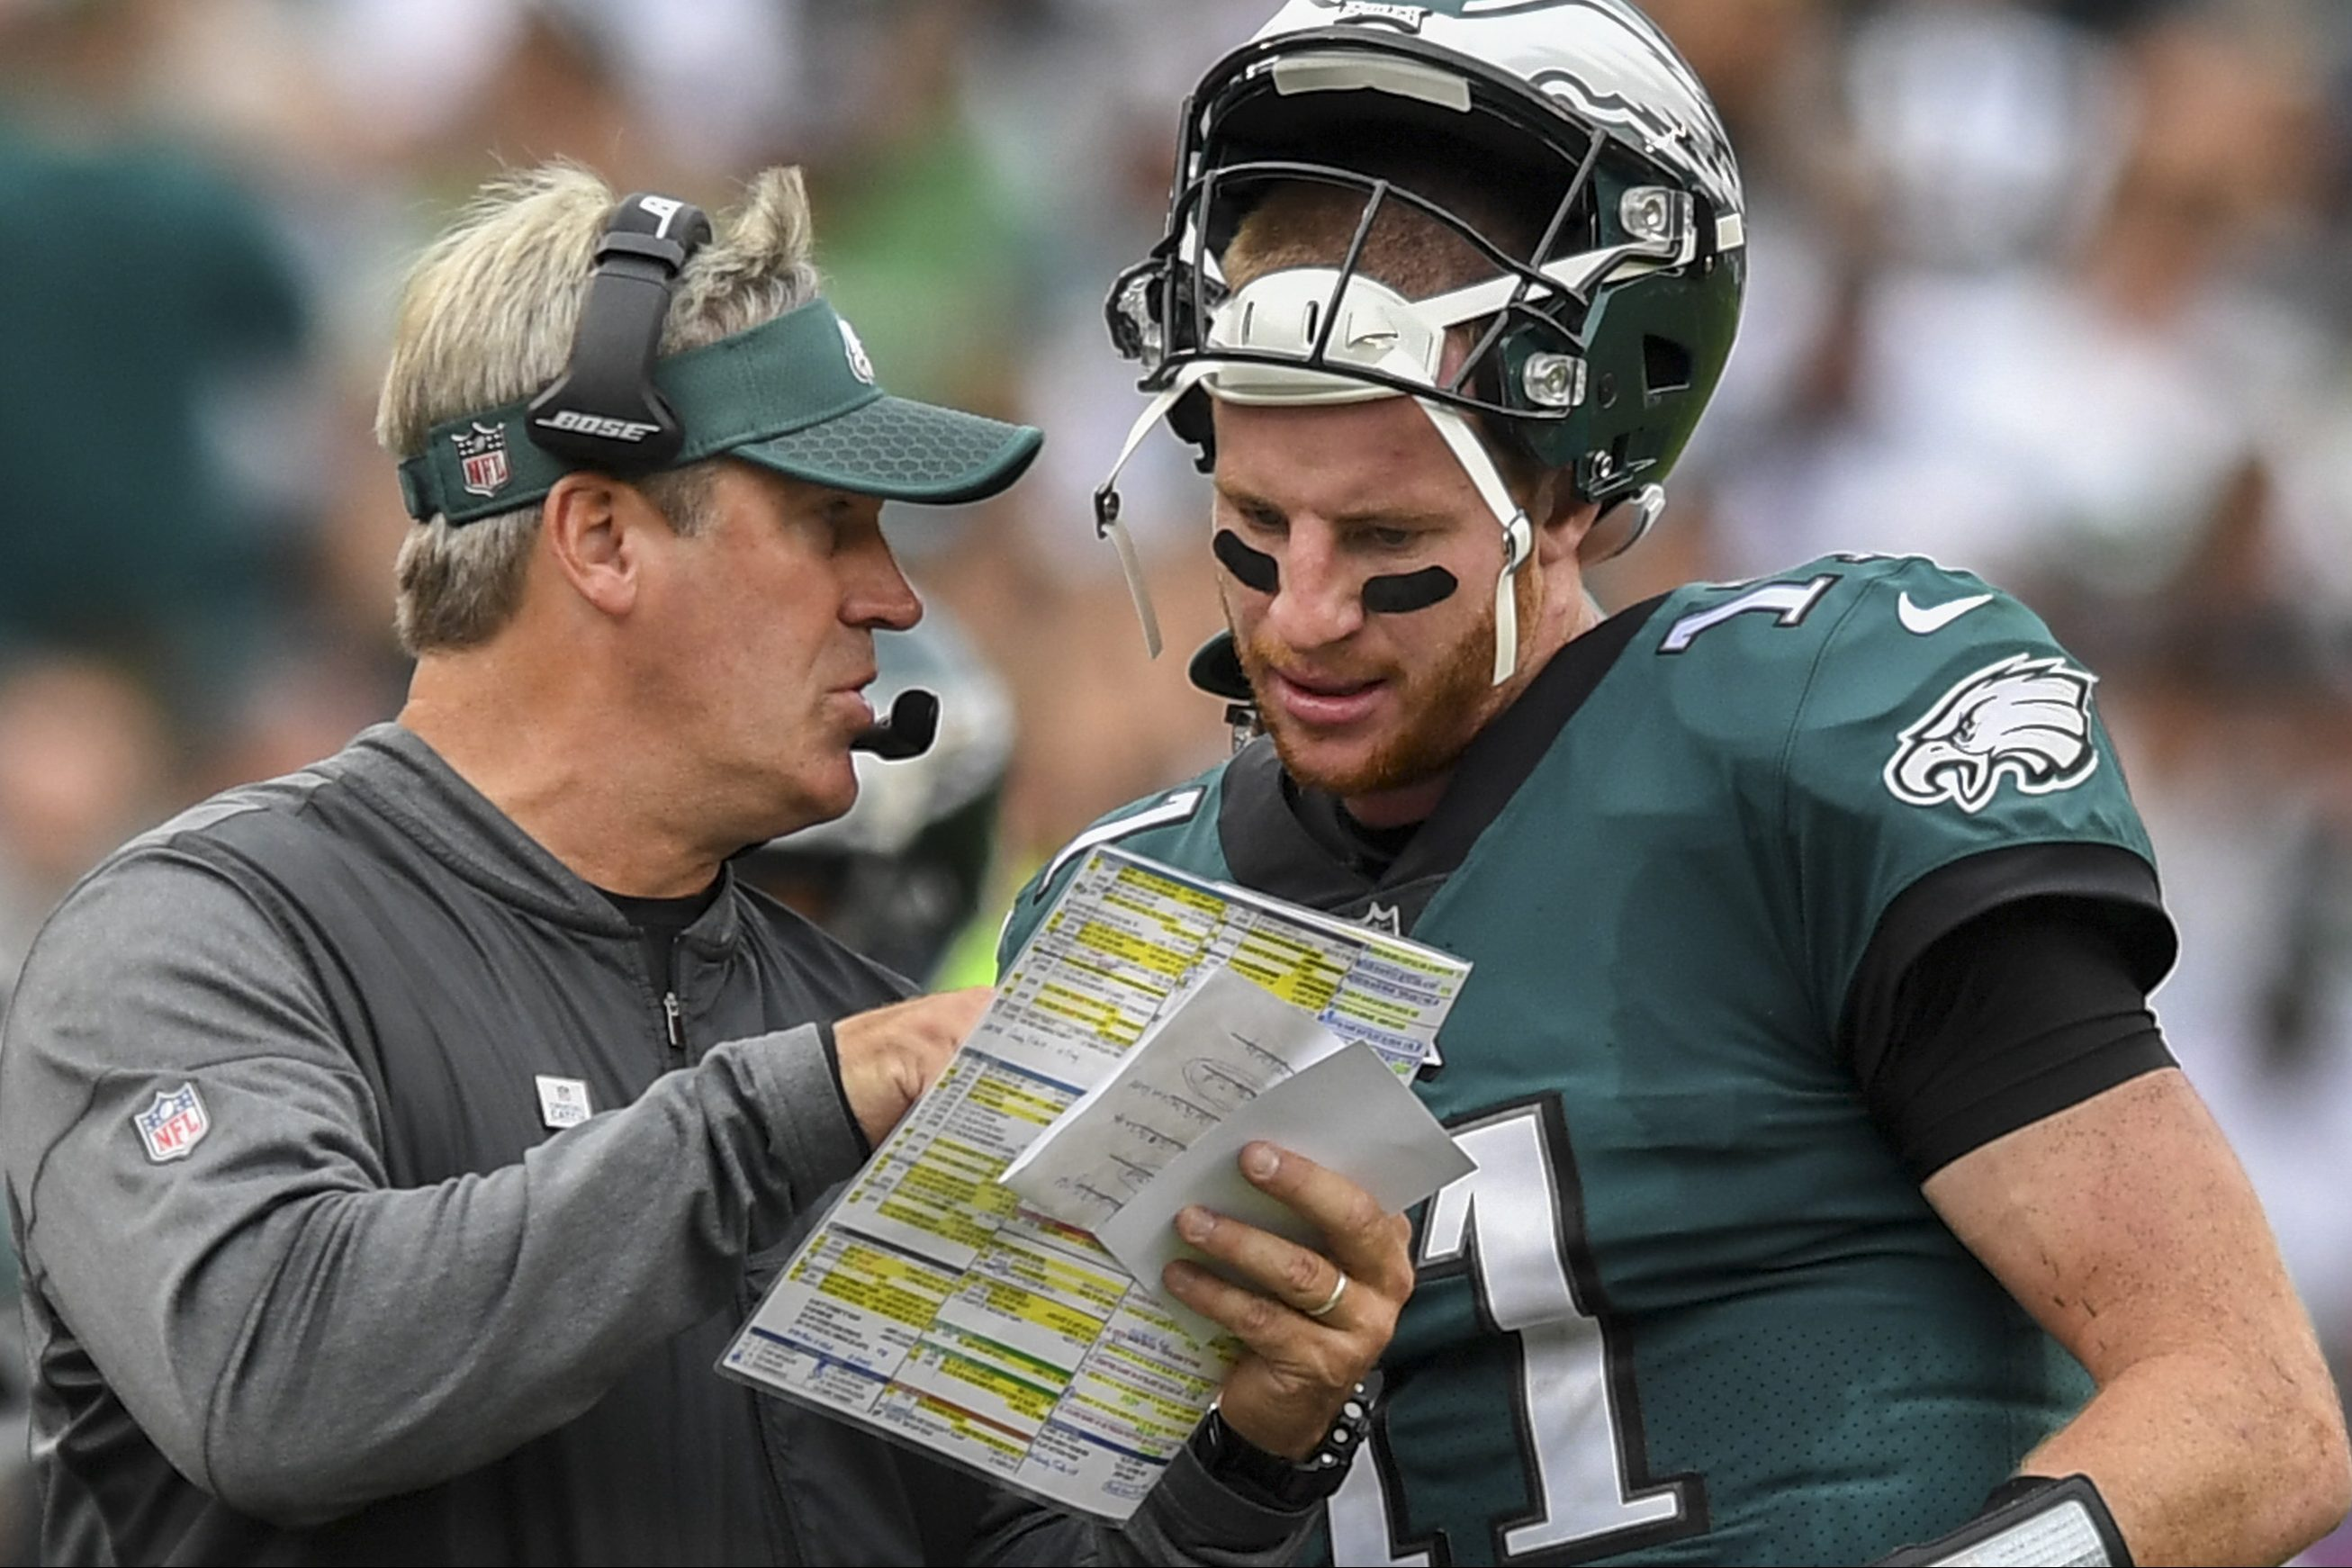 The Eagles´ culture flows from the top down, with Doug Pederson as the source but Carson Wentz as the engine, players say